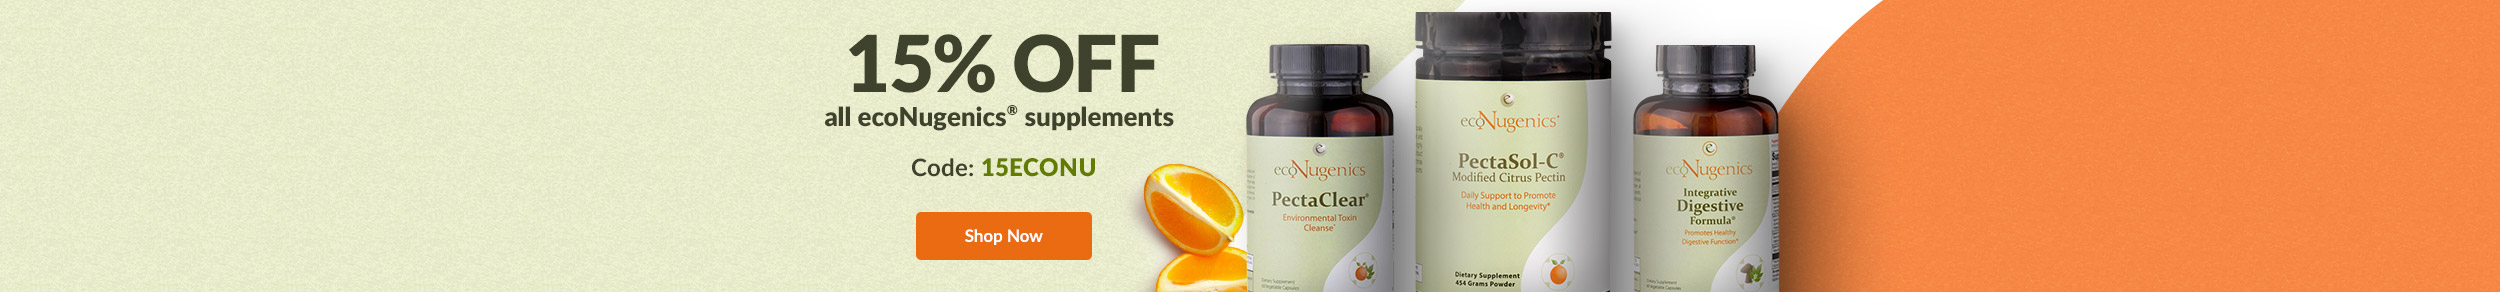 15% OFF all EcoNugenics supplements - Code: 15ECONU